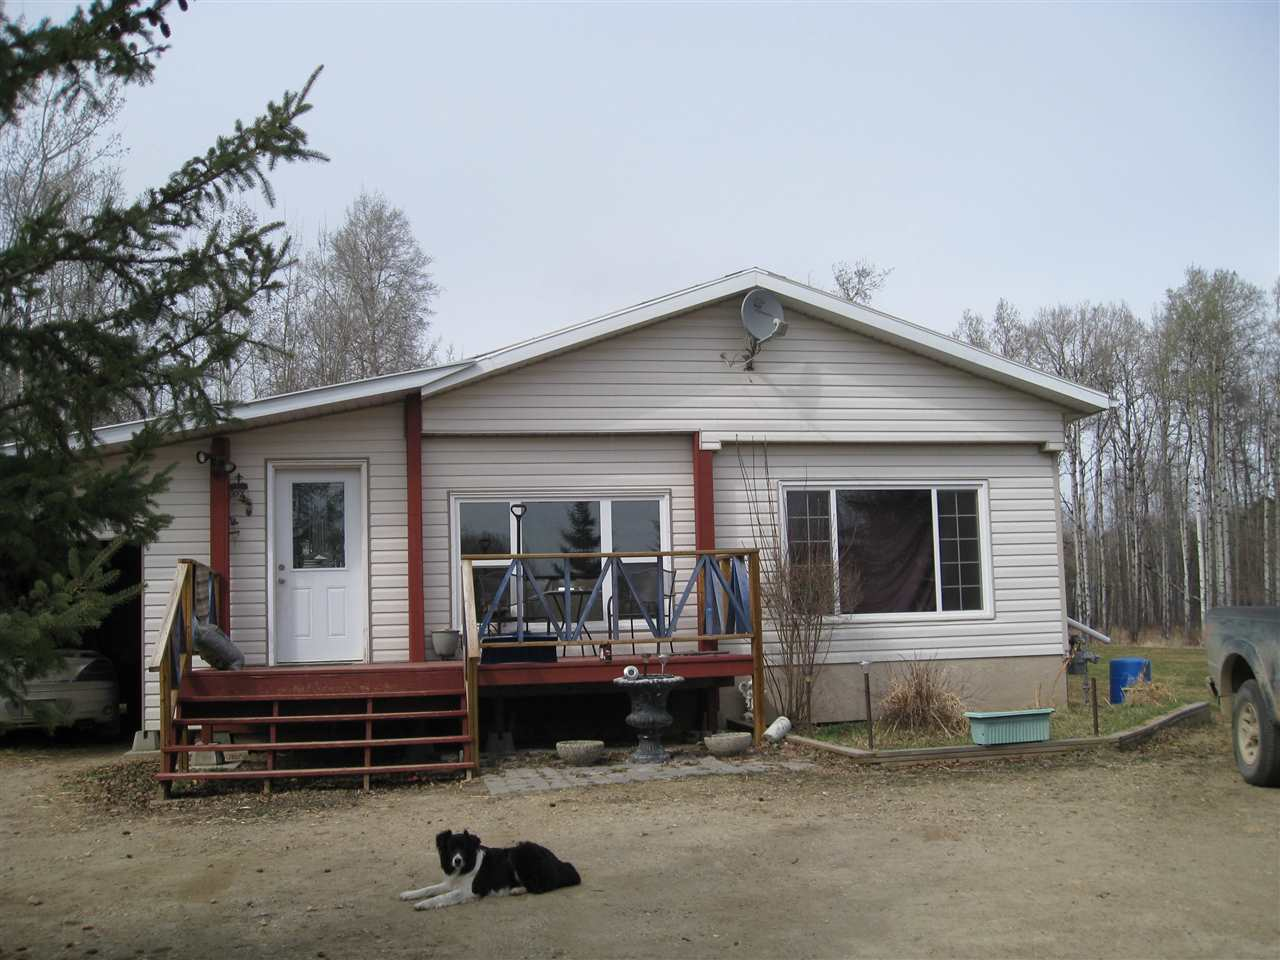 Main Photo: 17, 53426 Rge Rd 41: Rural Parkland County House for sale : MLS®# E4108774